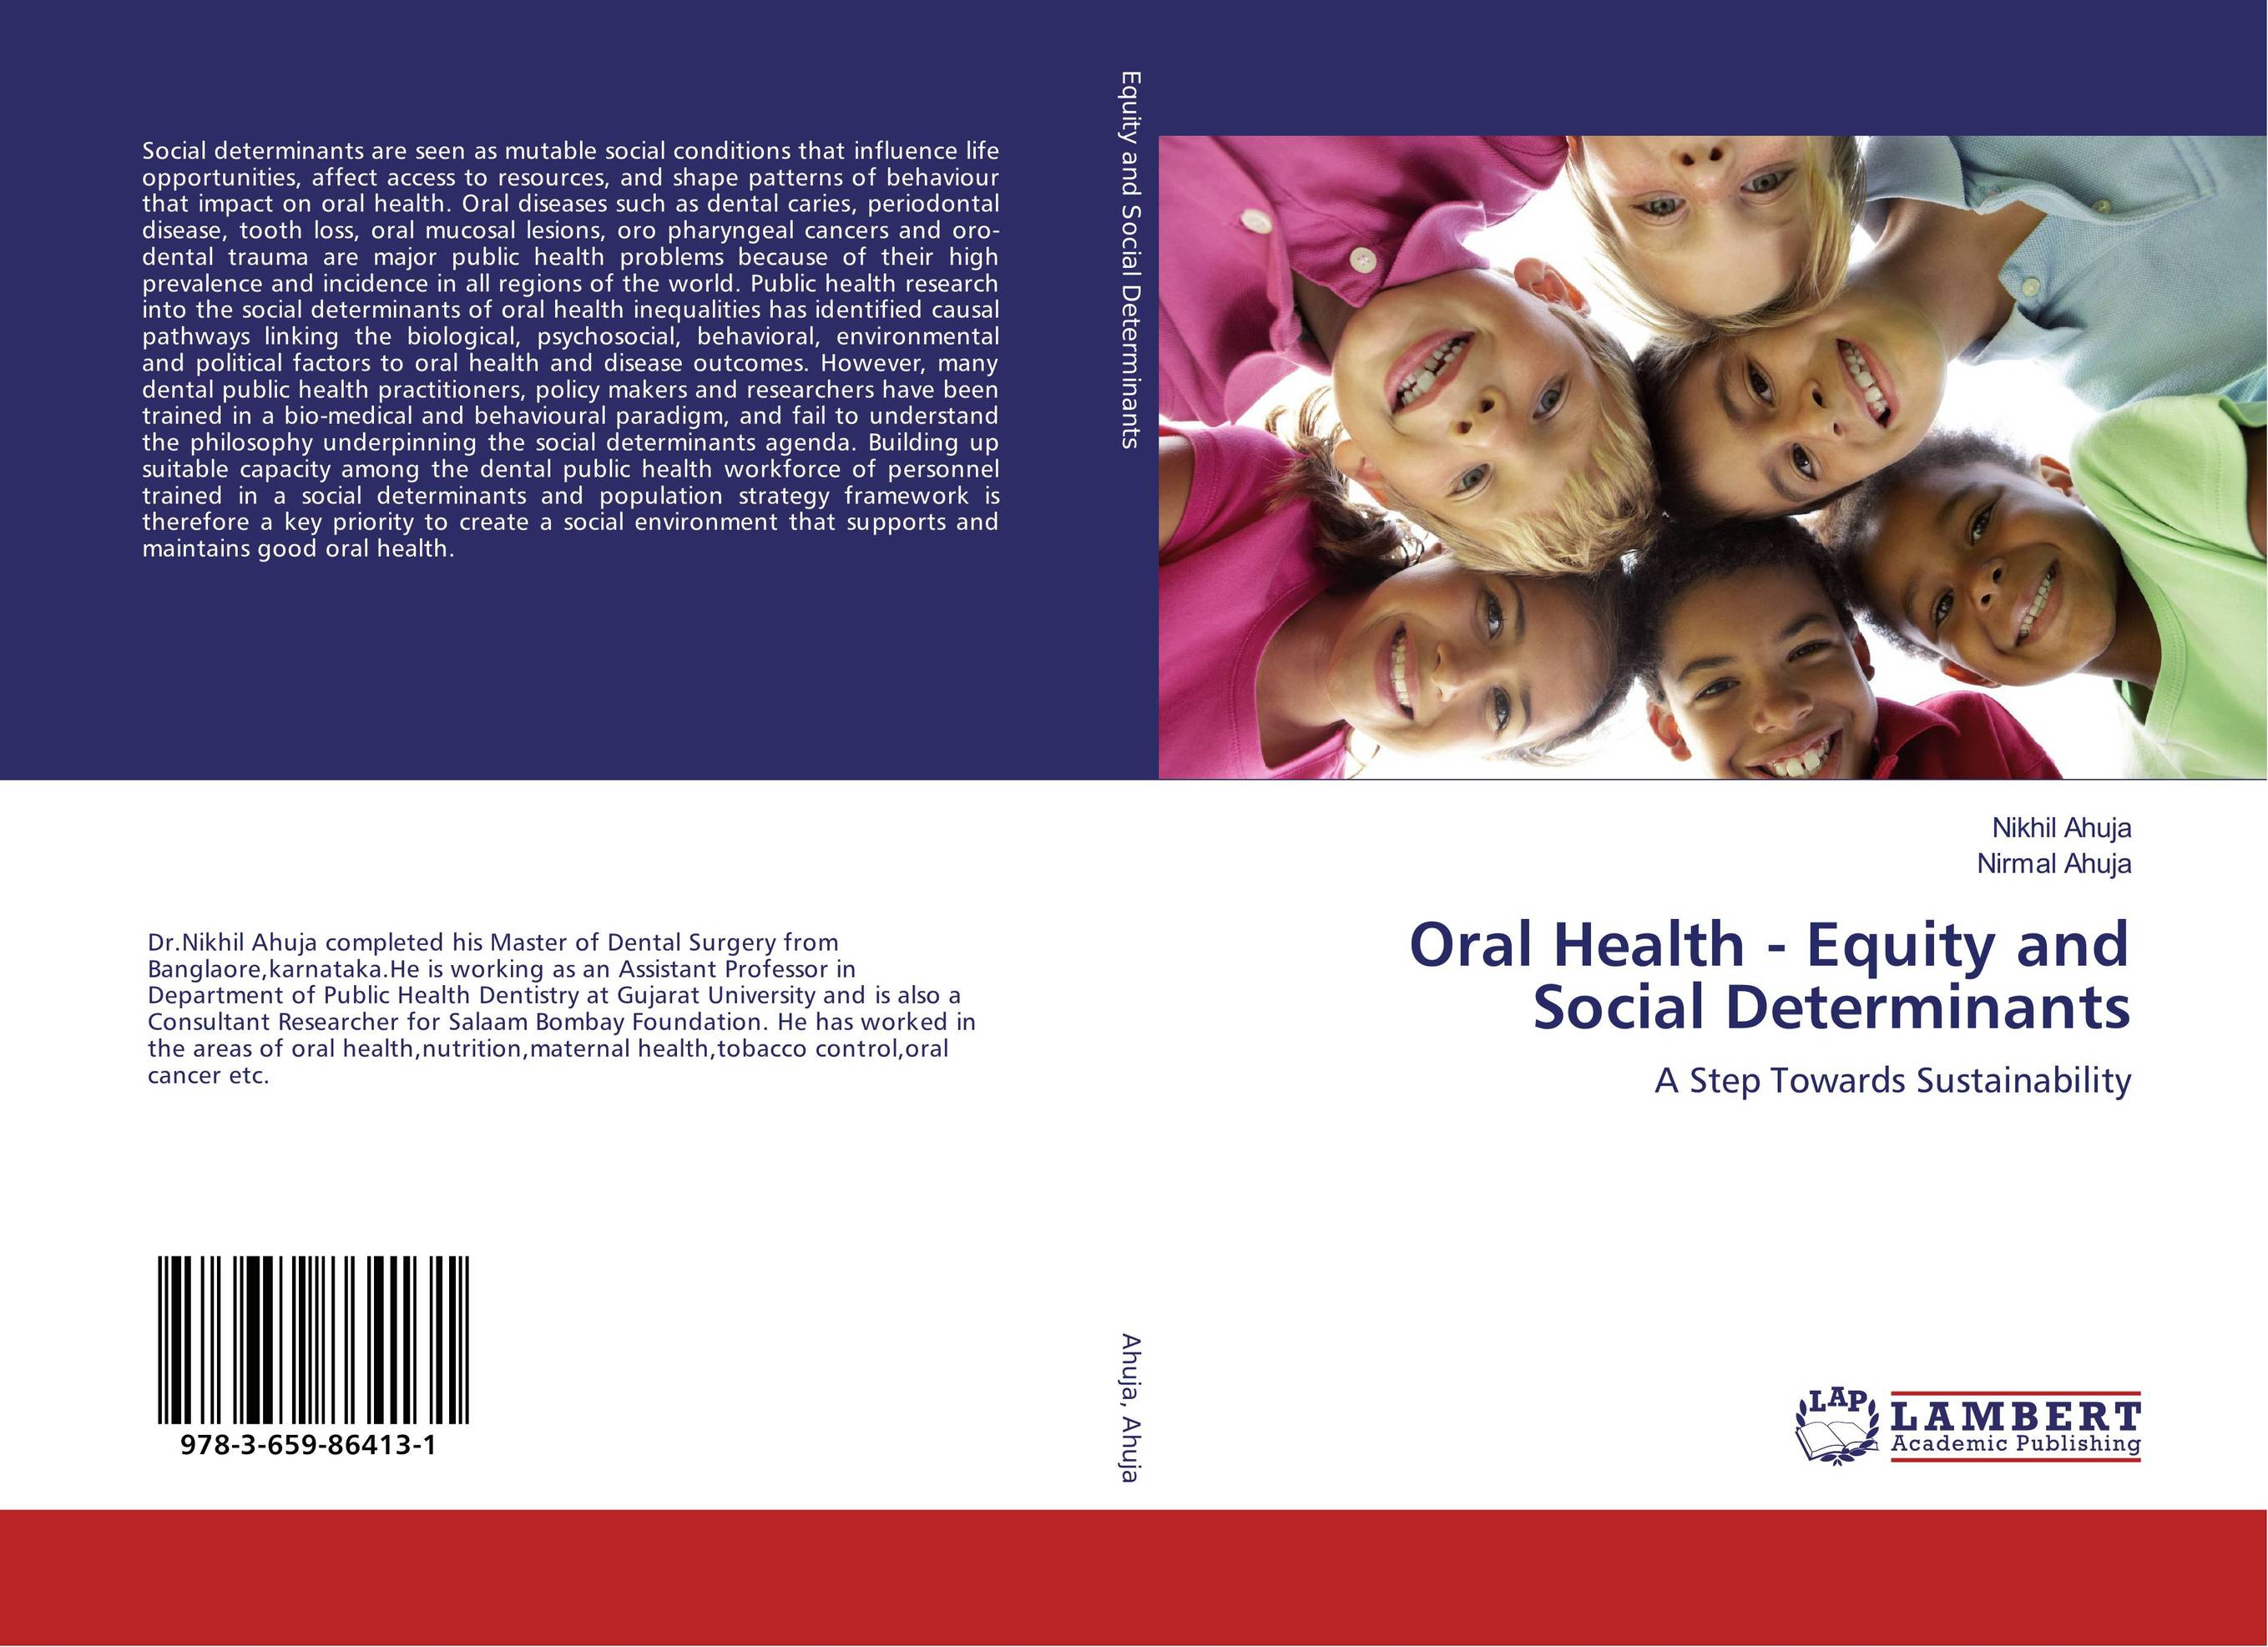 Oral Health - Equity and Social Determinants linguistic diversity and social justice